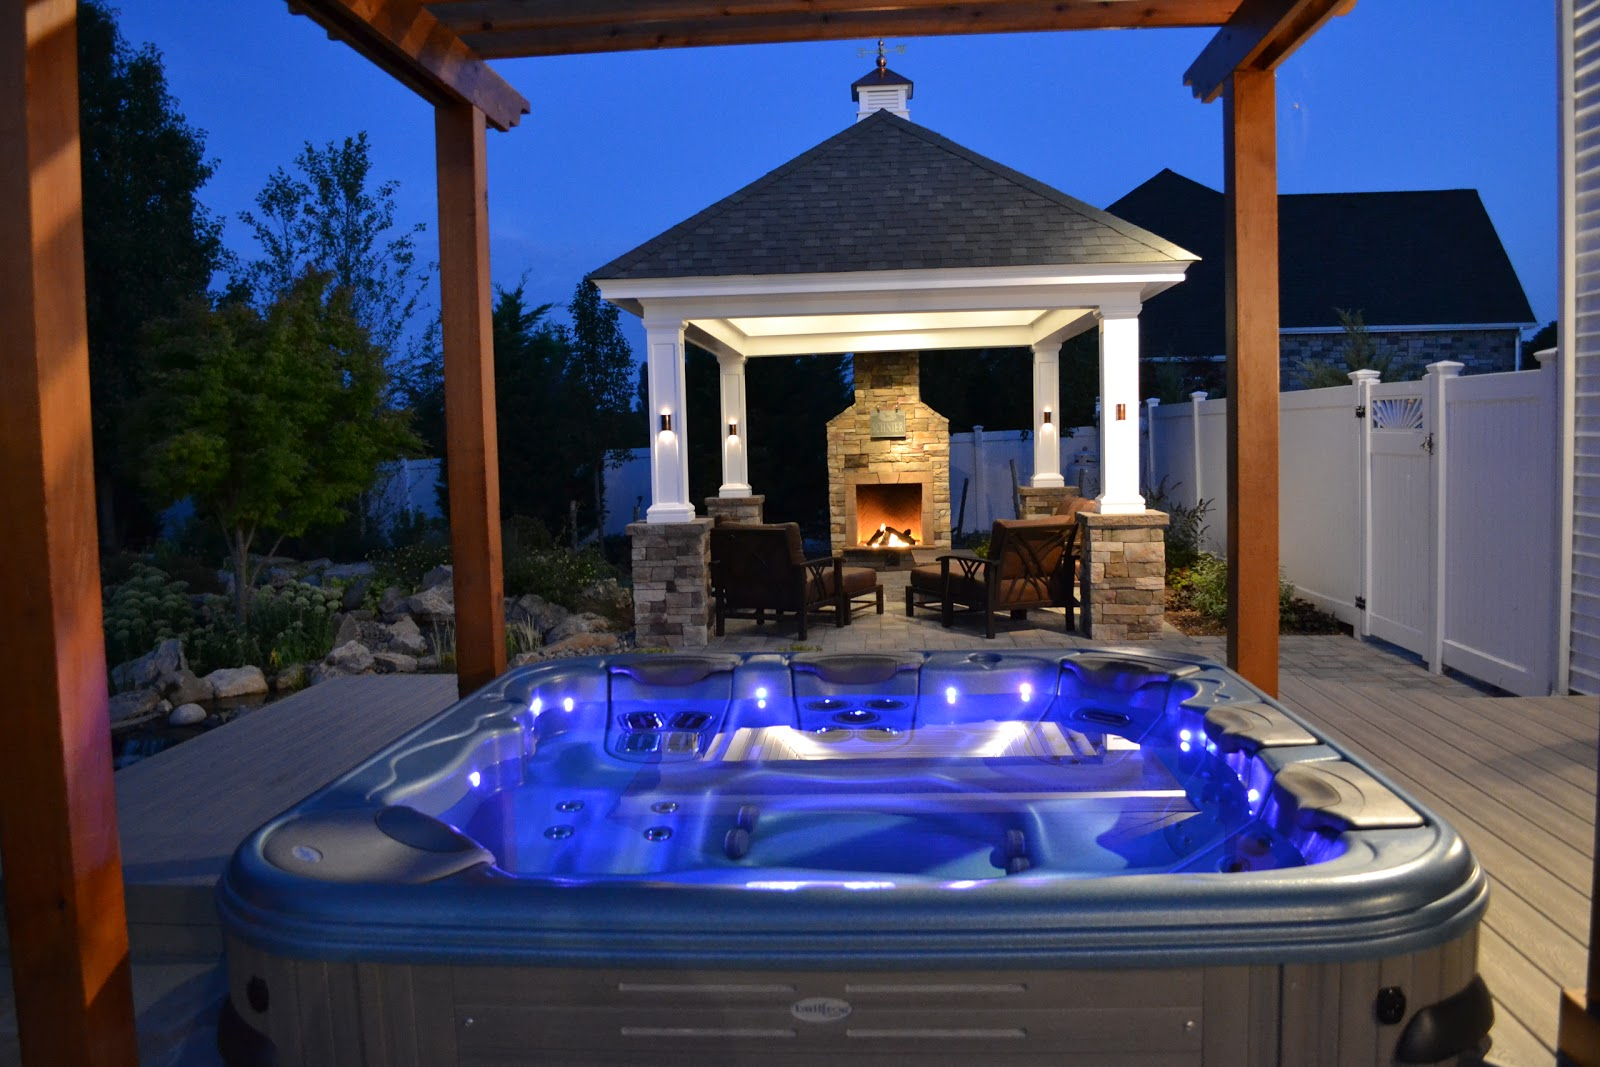 Photo of Best Hot Tubs Westbury Long Island in Westbury City, New York, United States - 4 Picture of Point of interest, Establishment, Store